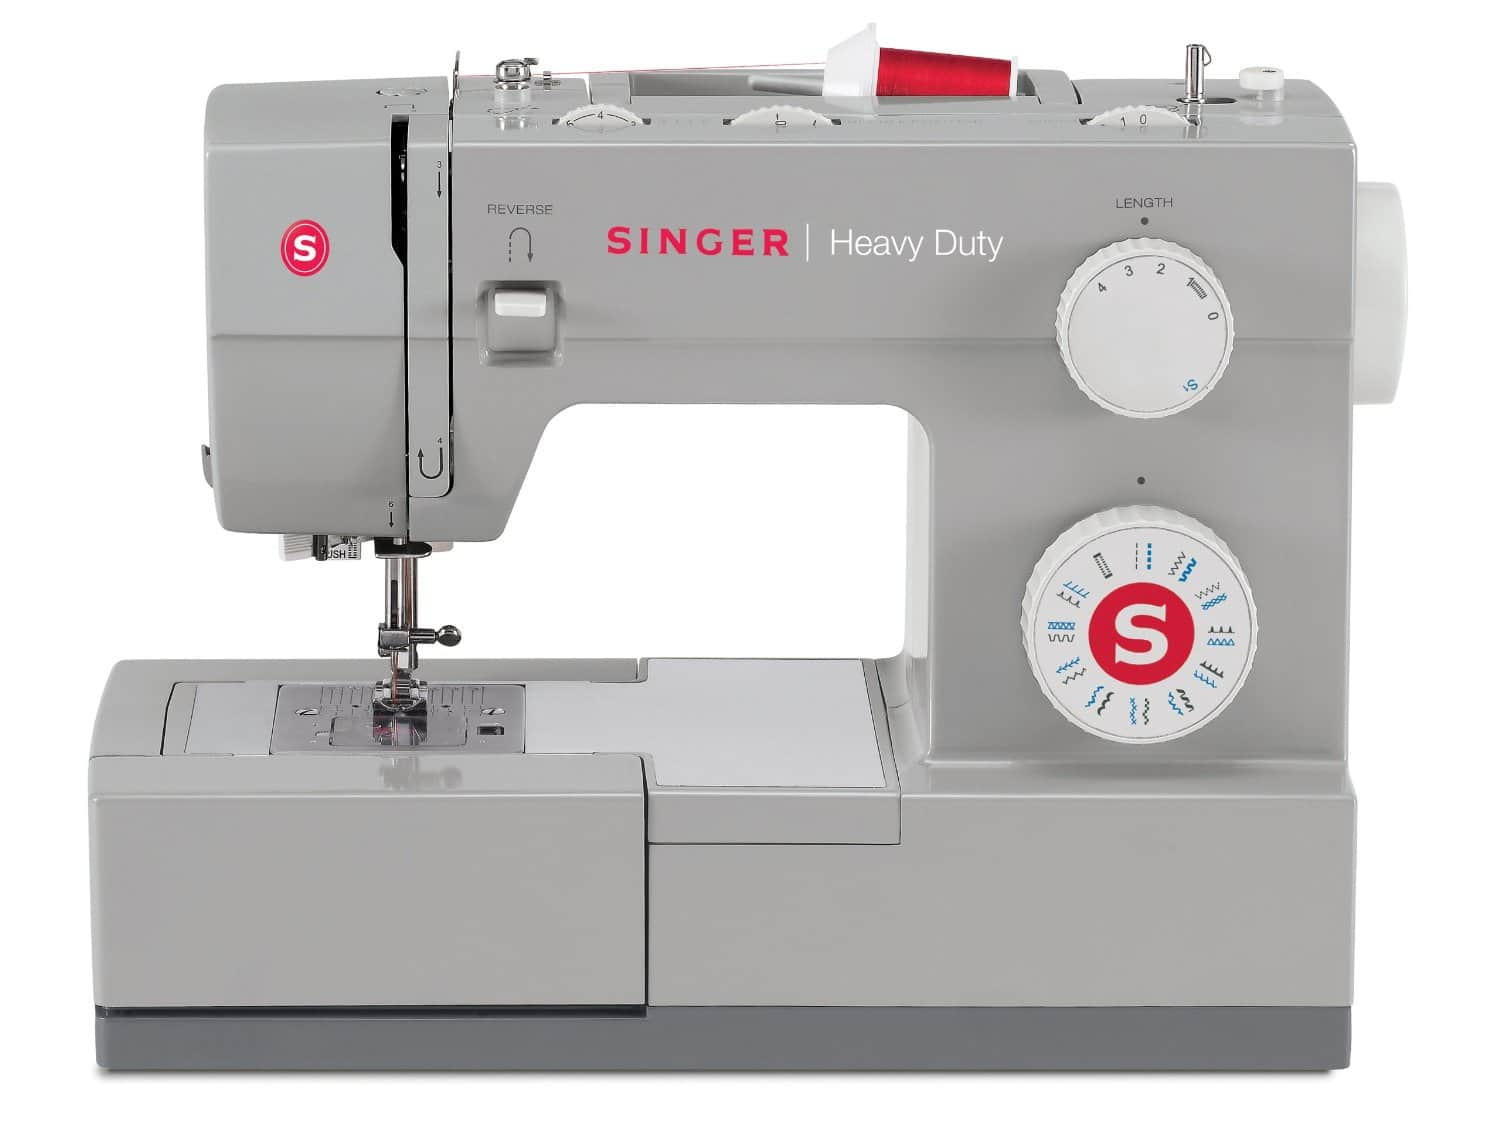 Singer 4423 Extra-High Speed Sewing Machine w/ Stainless Steel Bed Plate  $100 + Free Shipping